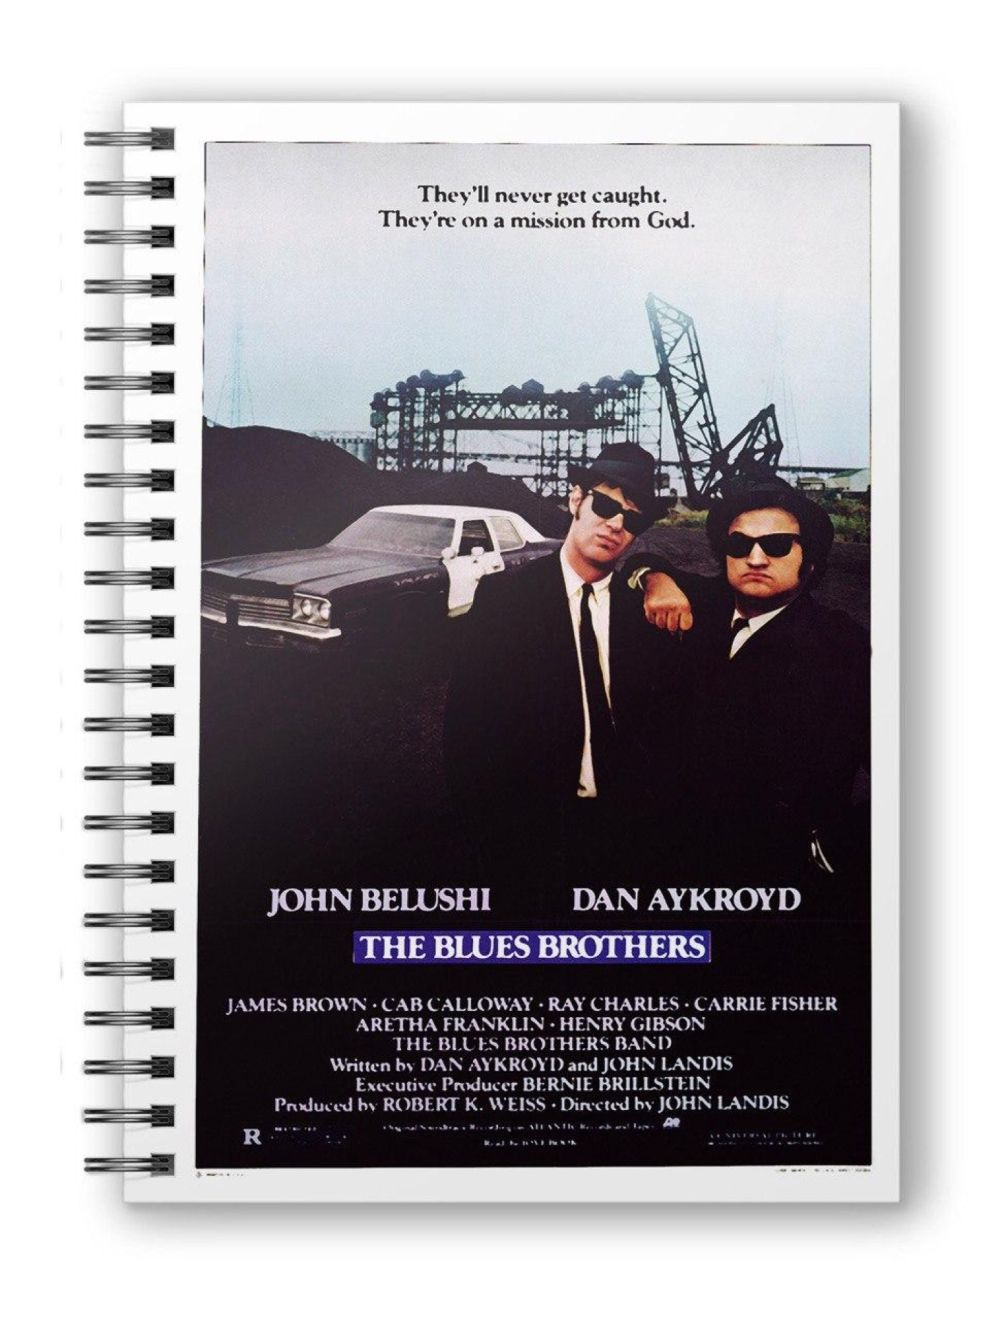 Blues Brothers (The) - Notebook - Taccuino - Mission from God